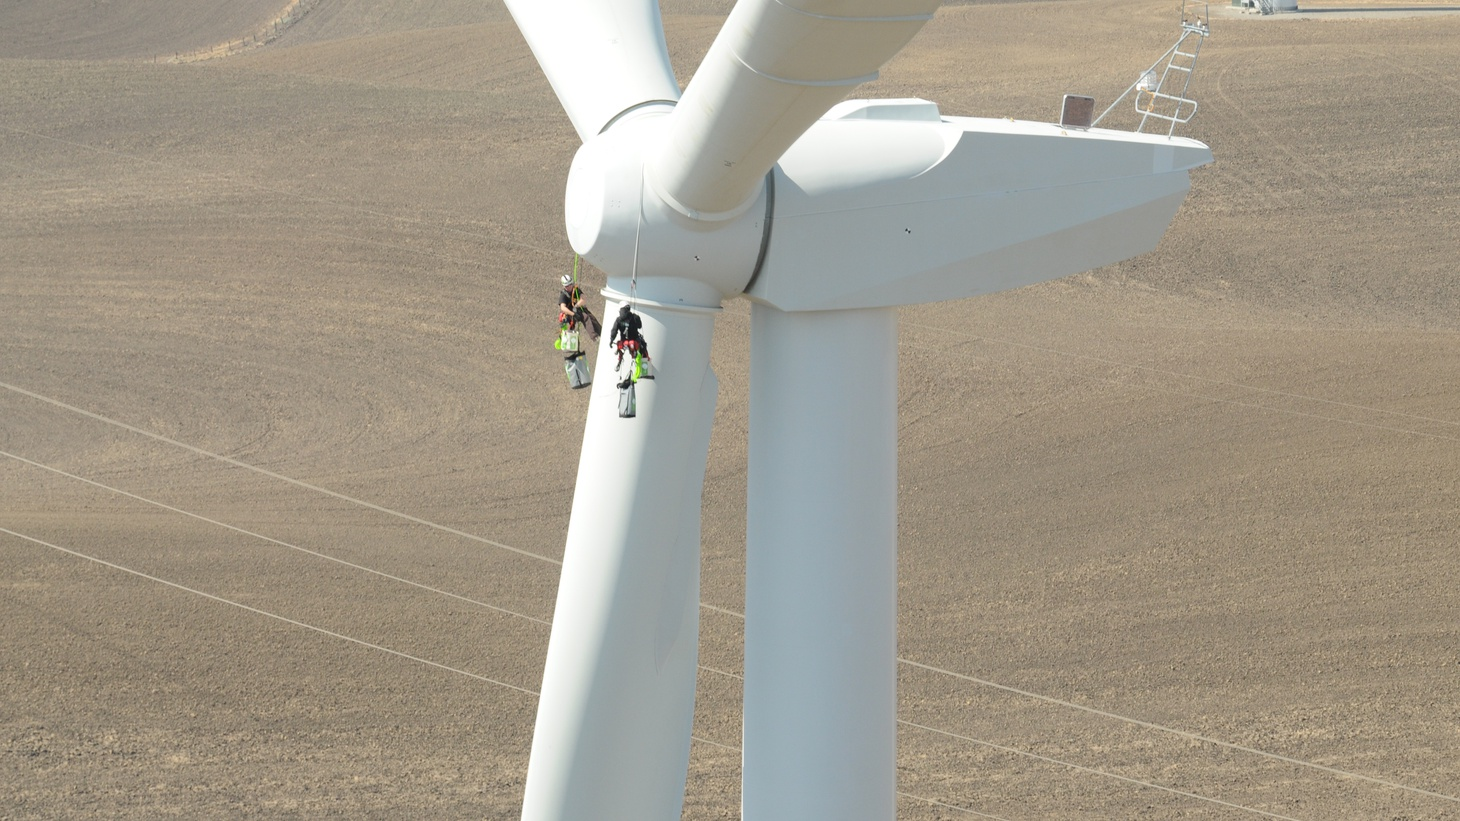 Climbers service a turbine blade at Shiloh Wind power plant in the Montezuma Hills of Solano County.